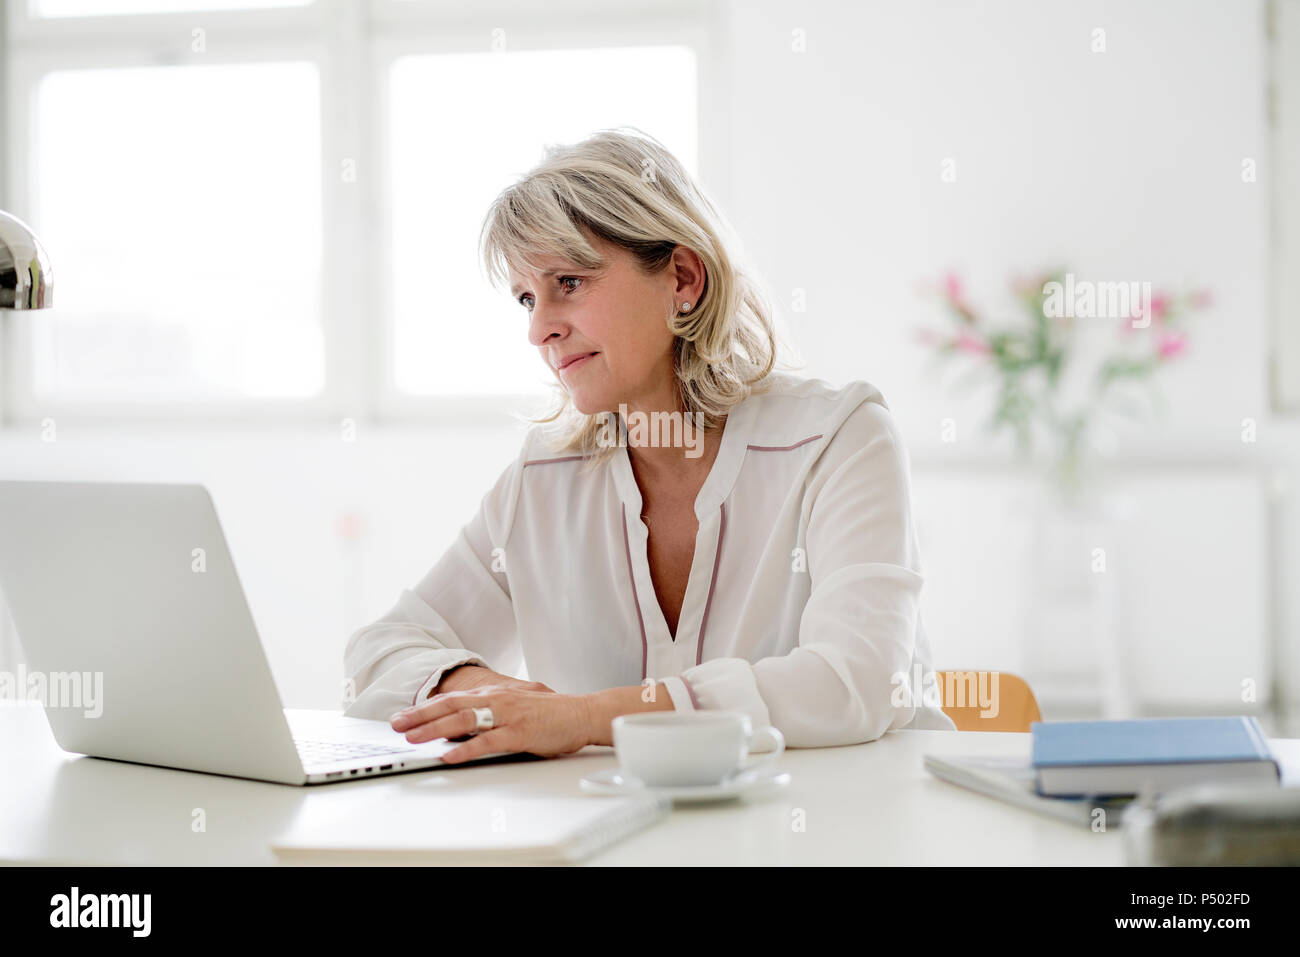 Smiling mature woman working on laptop at desk Photo Stock